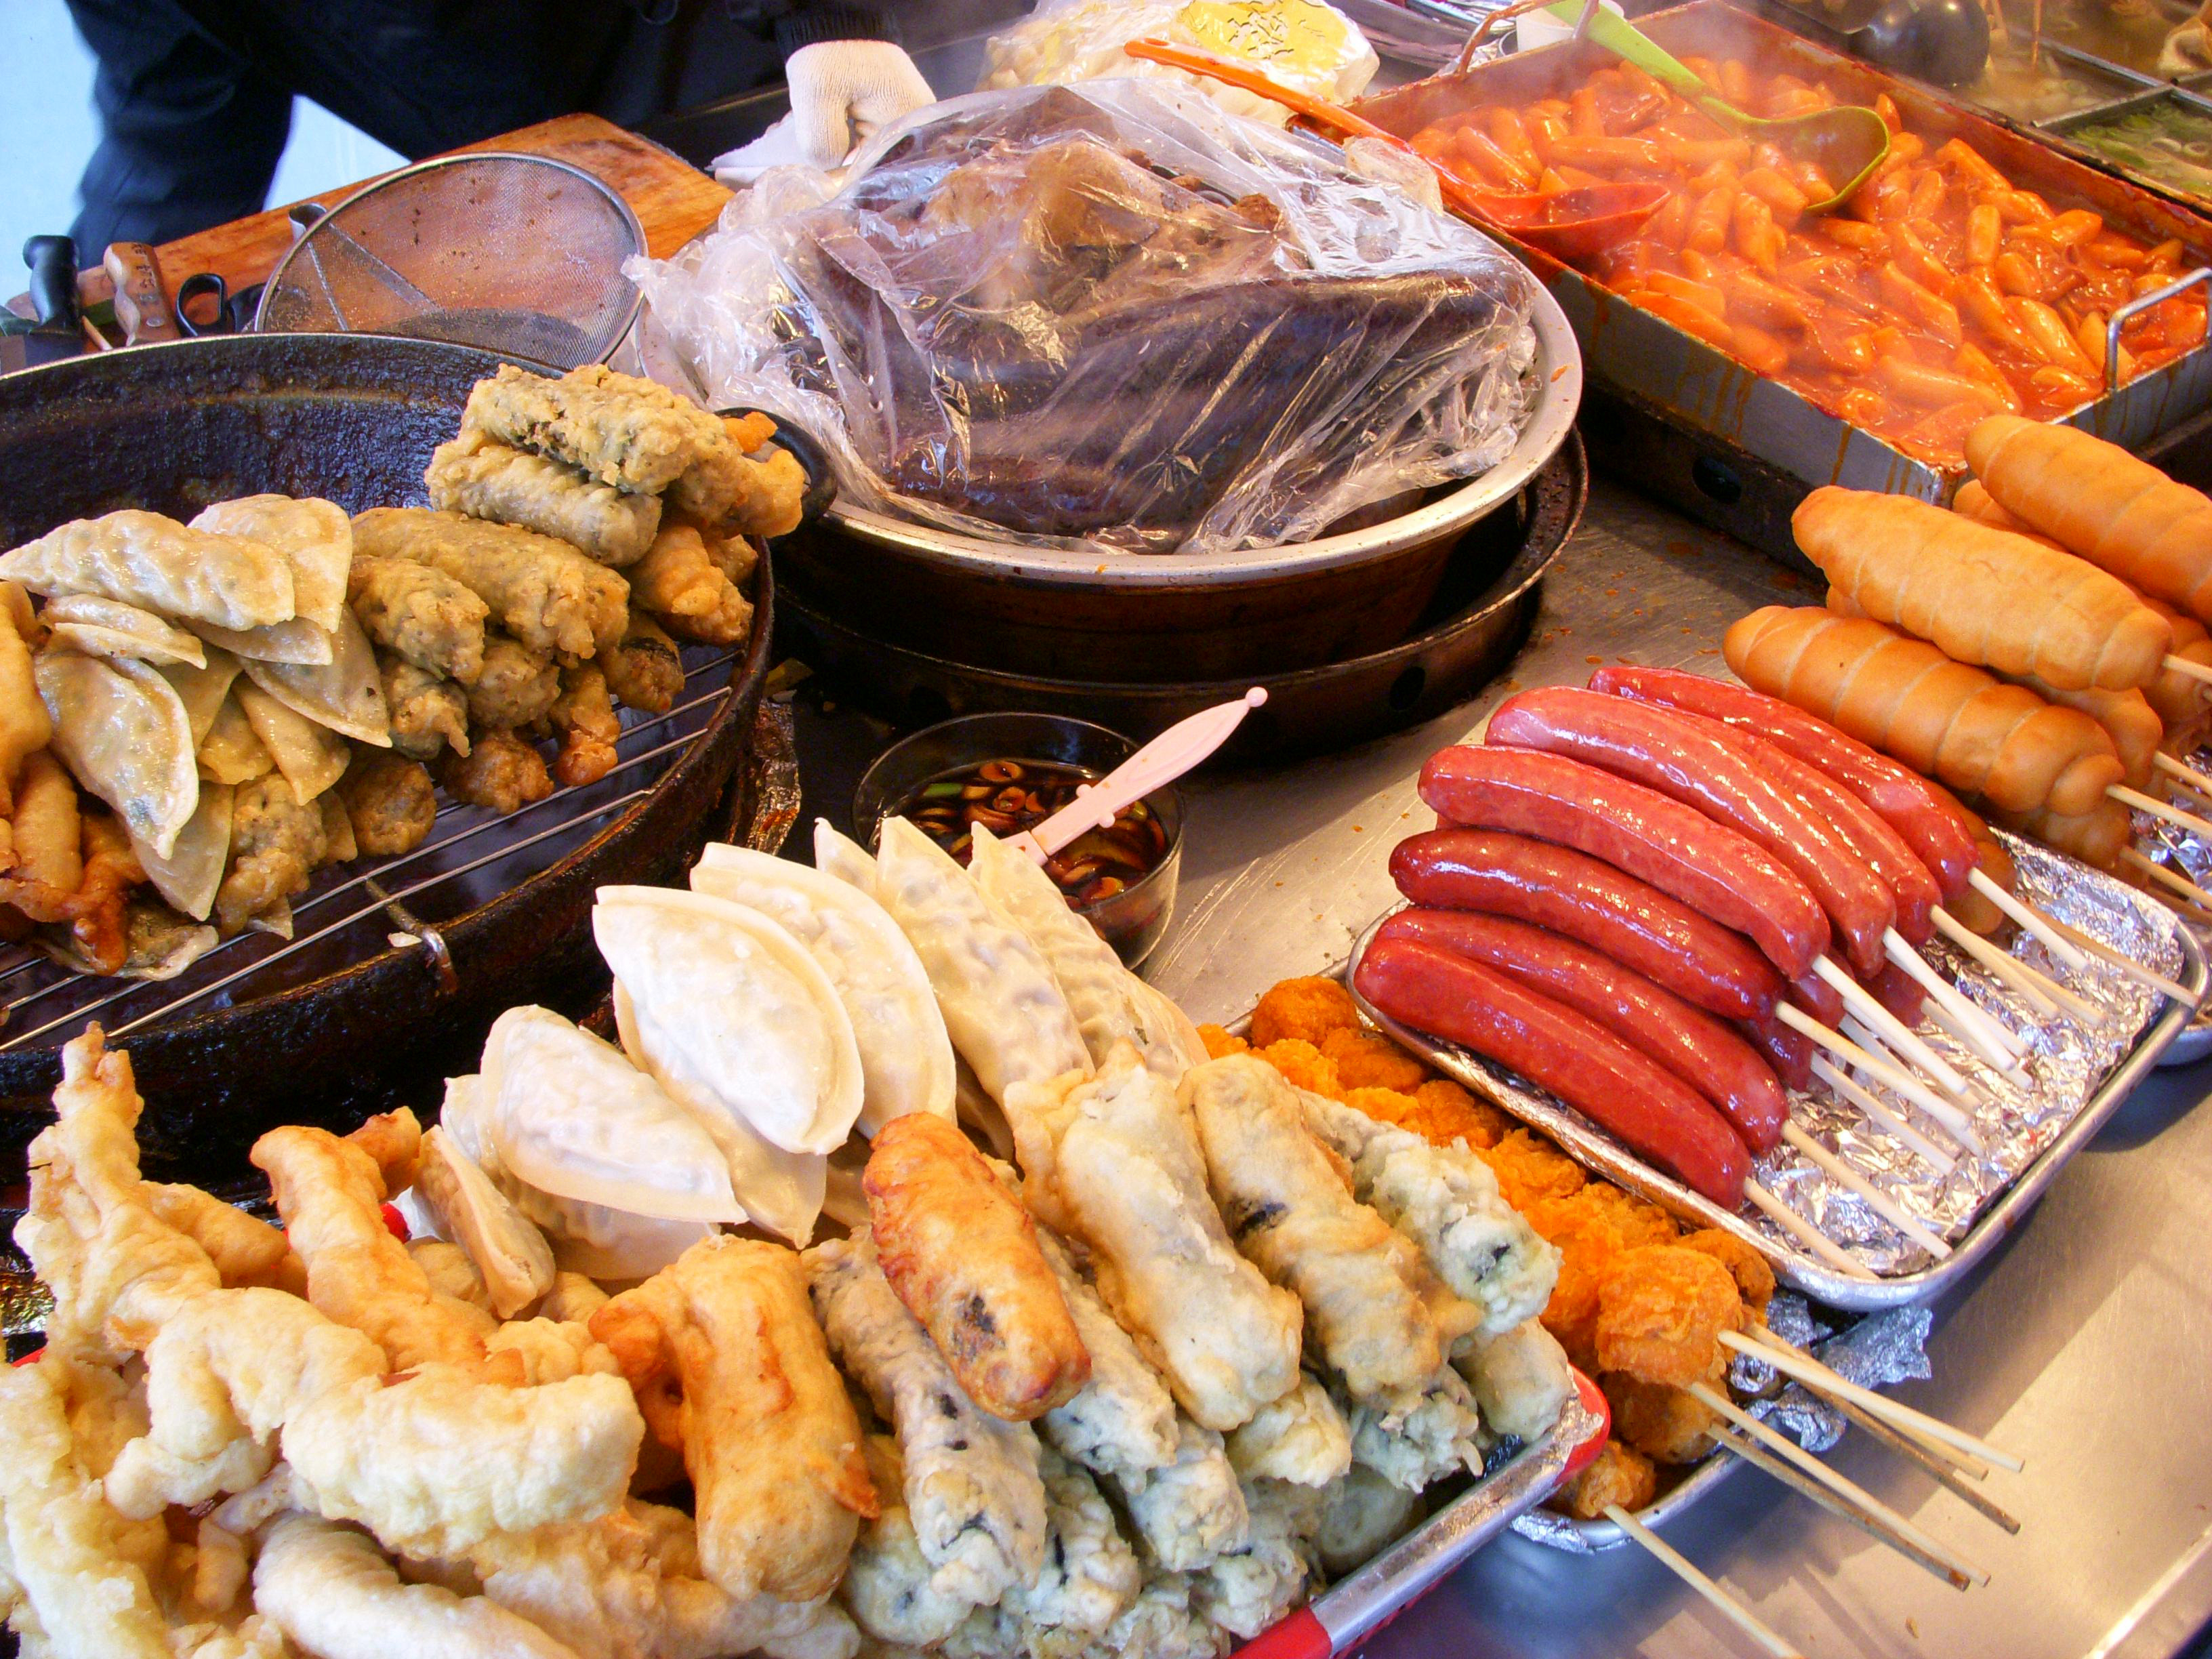 Street food in Seoul. (Photo by LWYang)